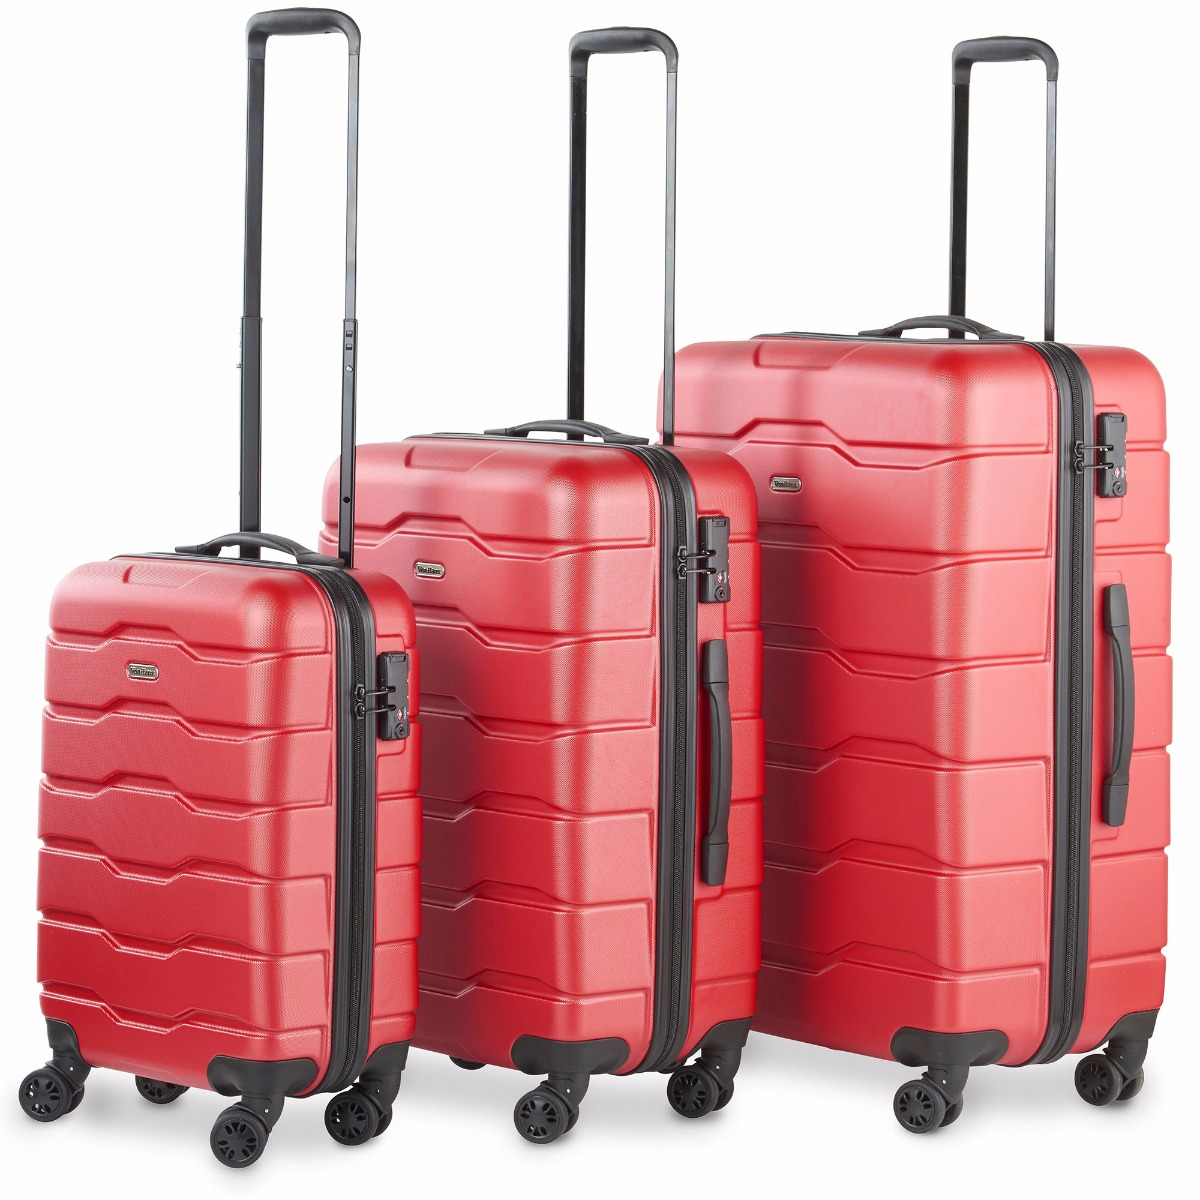 VonHaus Premium Red 3 Piece Lightweight Travel Luggage Set - Hard Shell Suitcase with 4 Spinner Wheels, TSA Integrated Lock, Extendable Handle - Small, Medium and Large